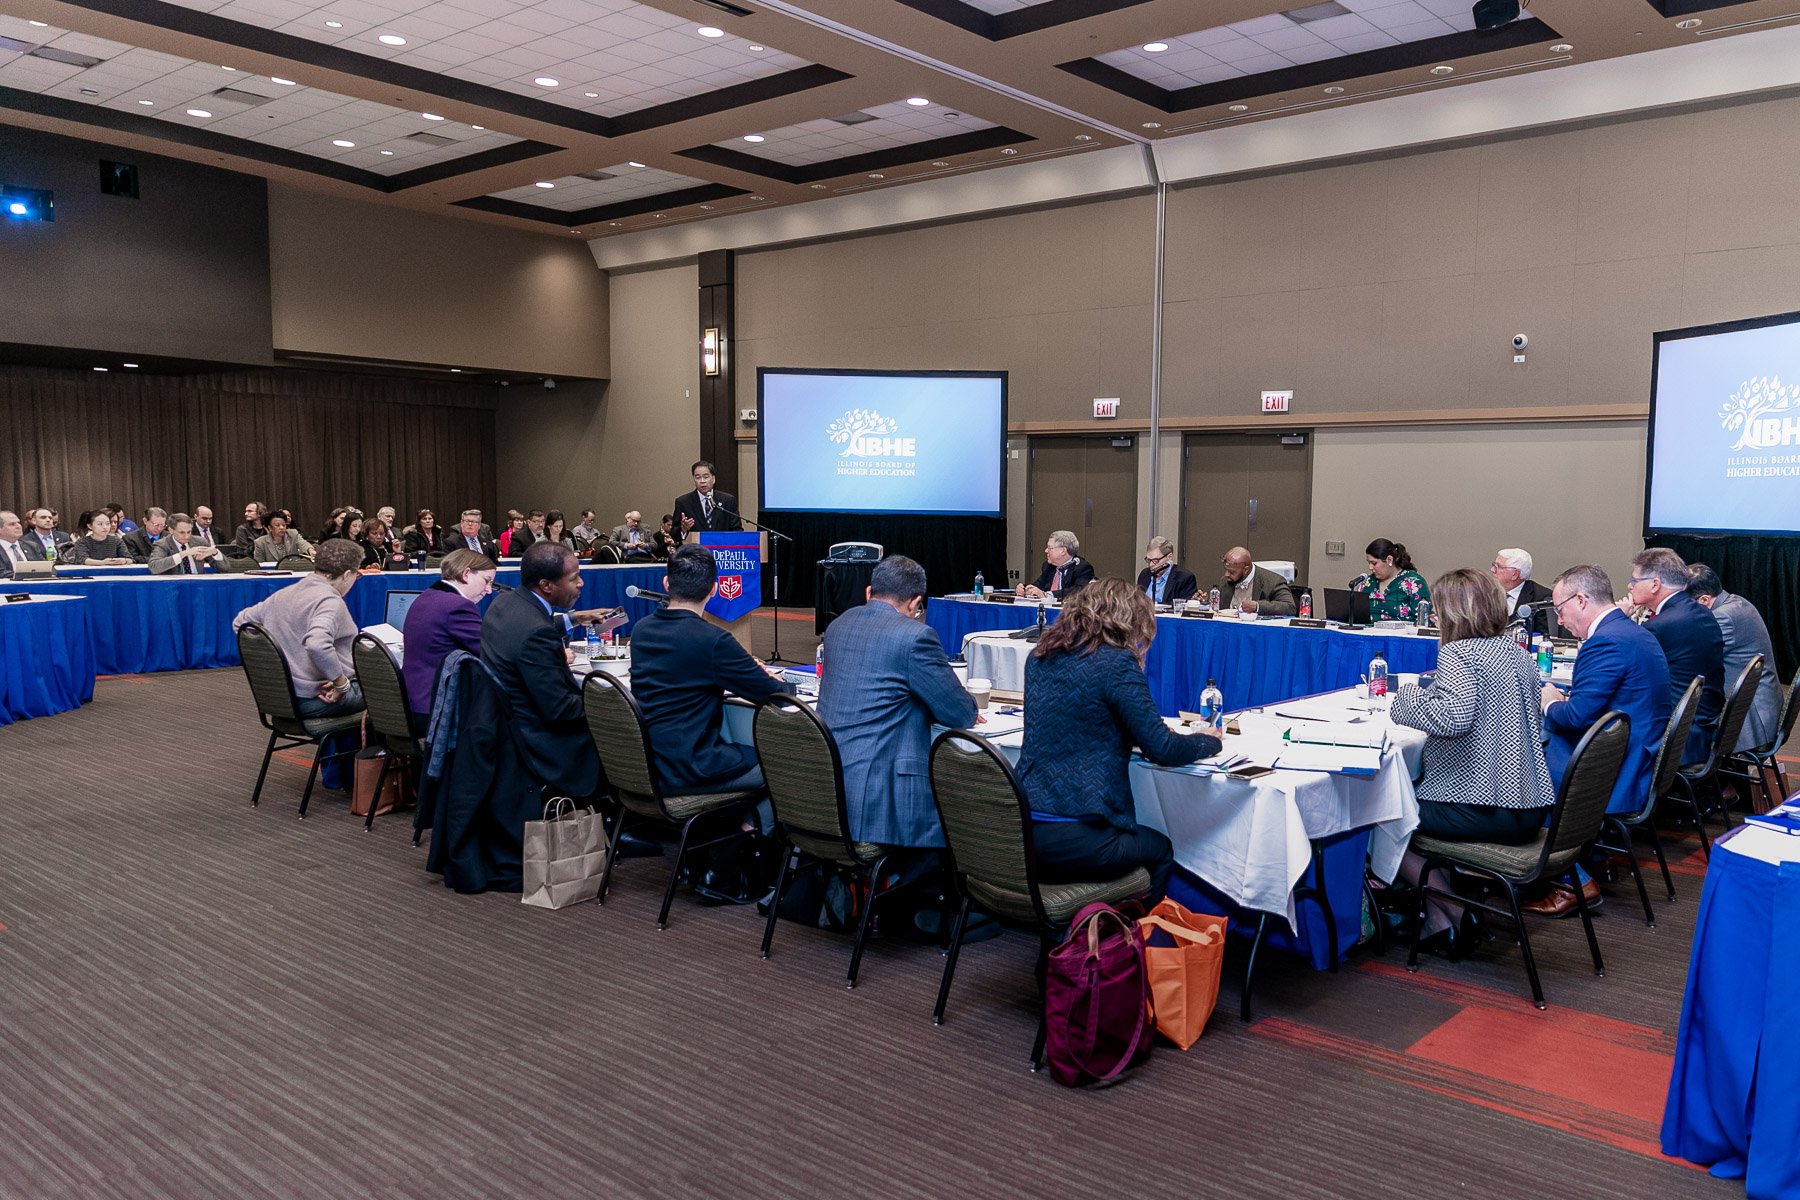 IBHE members and guests fill the student center for the winter board meeting. (DePaul University/Randall Spriggs)